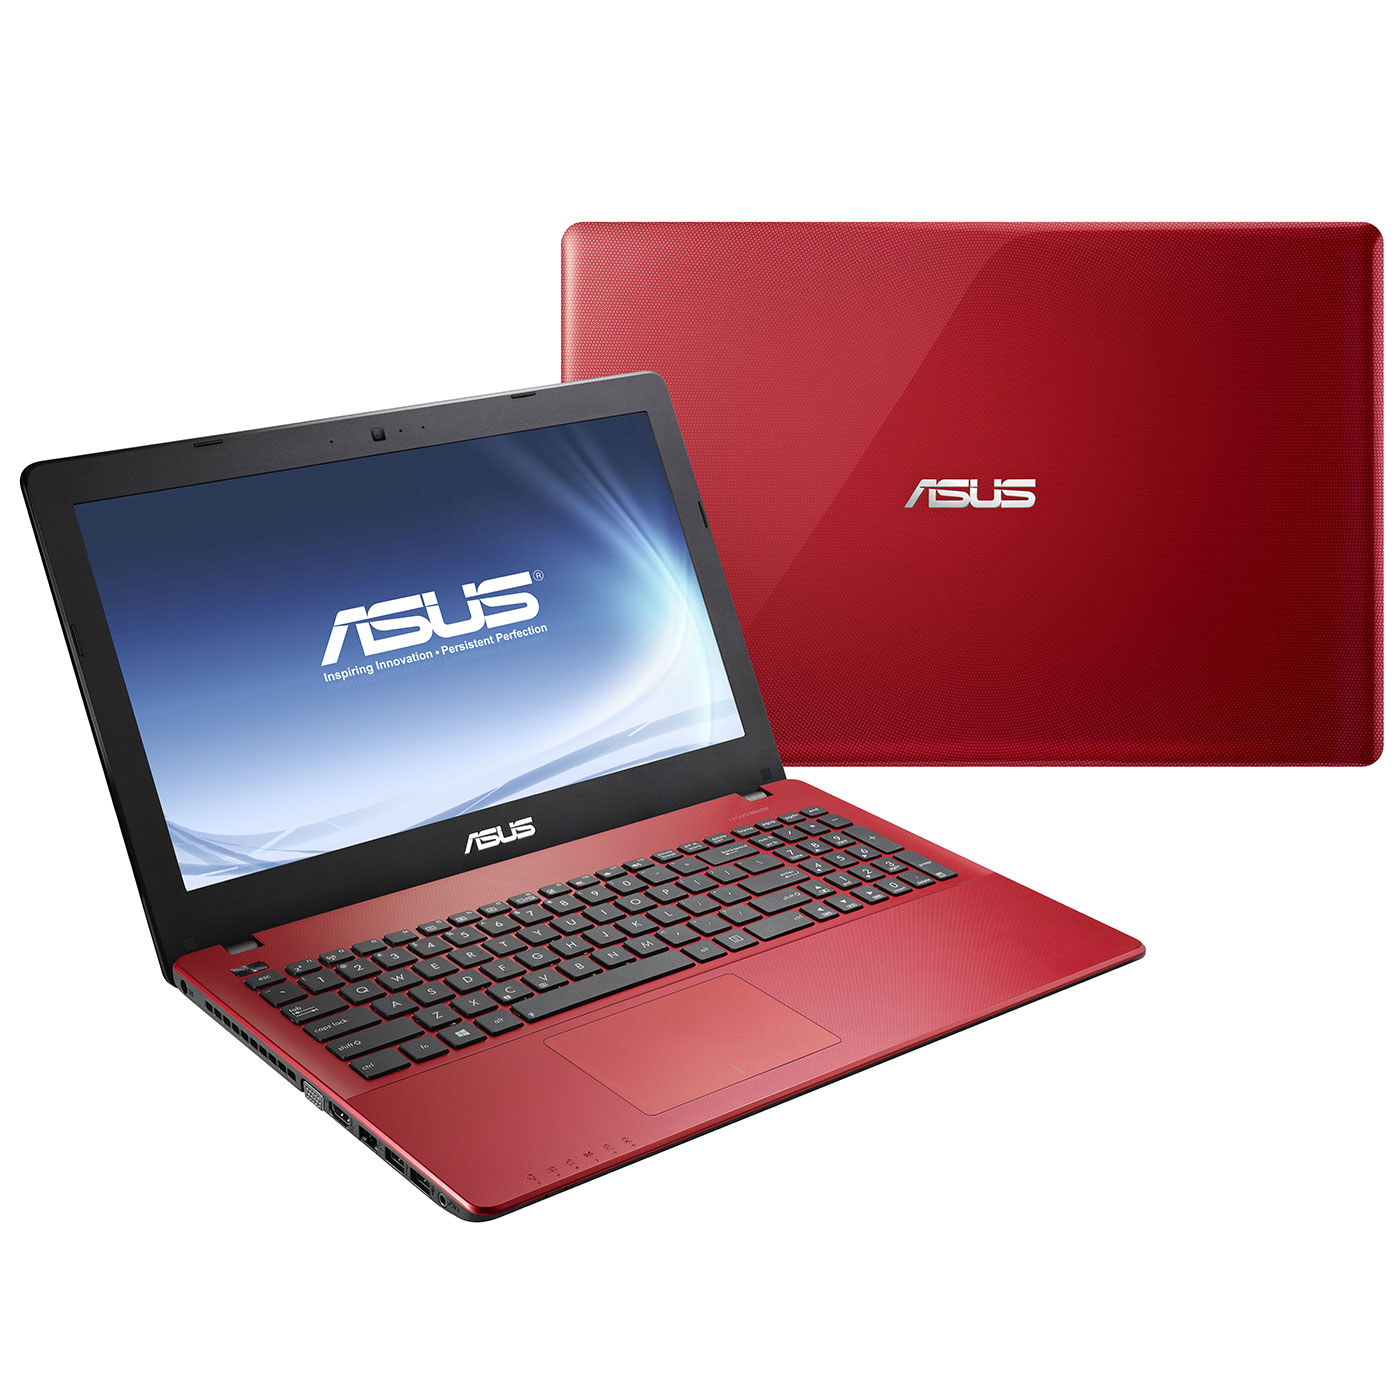 asus r510lav xx962h rouge pc portable asus sur. Black Bedroom Furniture Sets. Home Design Ideas